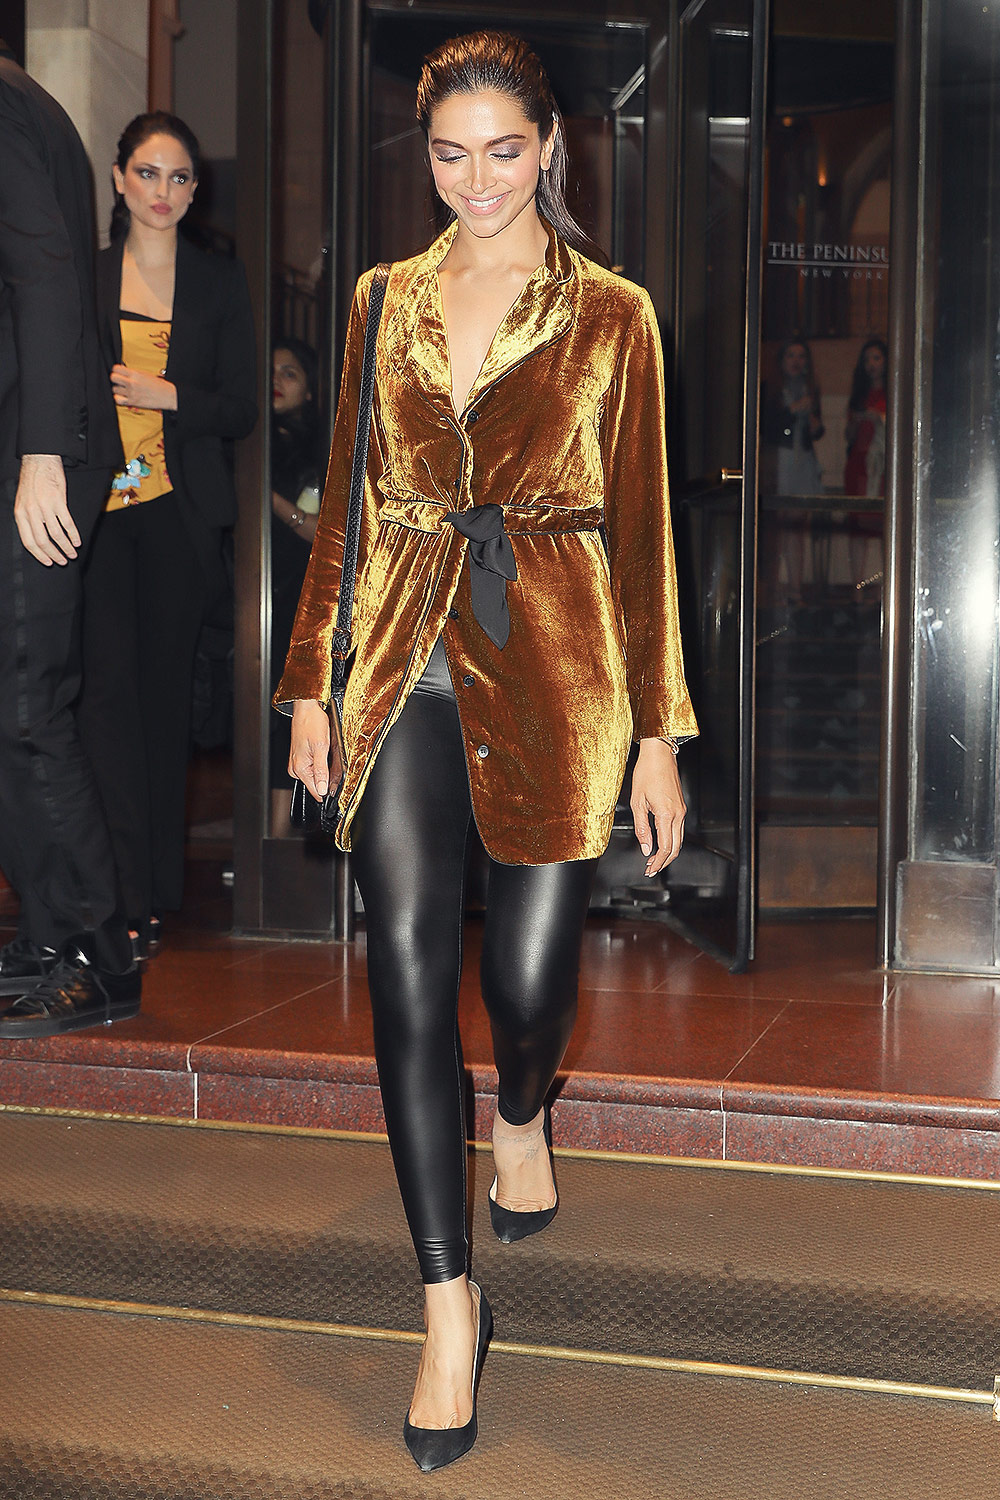 Deepika Padukone out in NYC